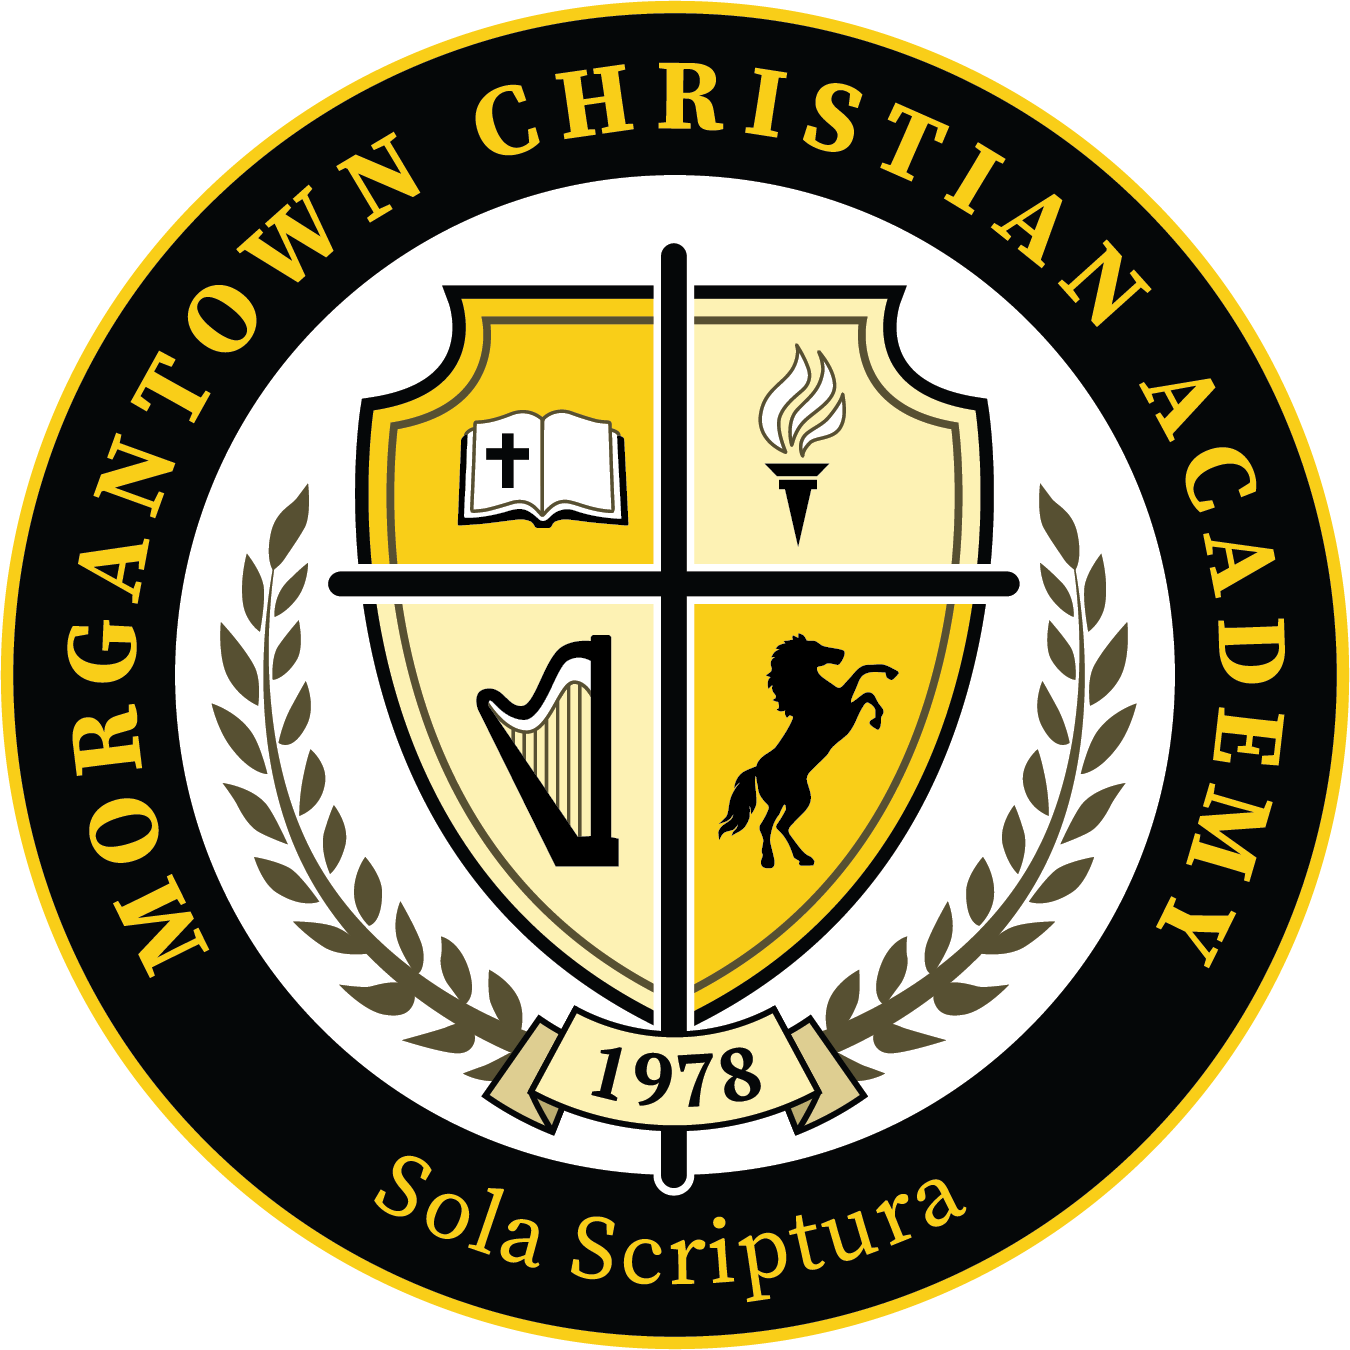 Morgantown Christian Academy